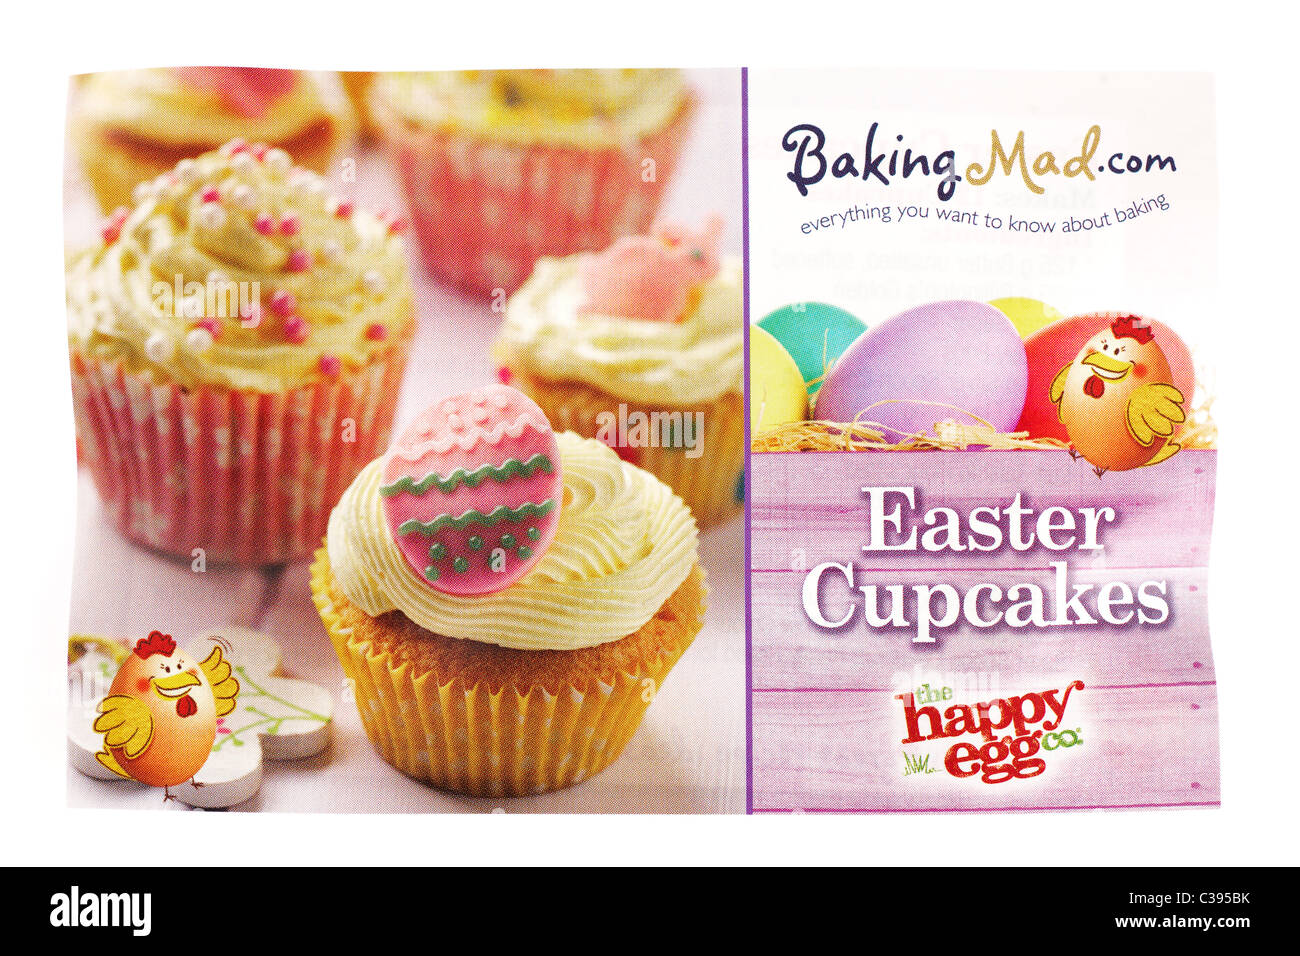 Leaflet advertising Baking Mad.com everything you wanted to know about baking - Stock Image